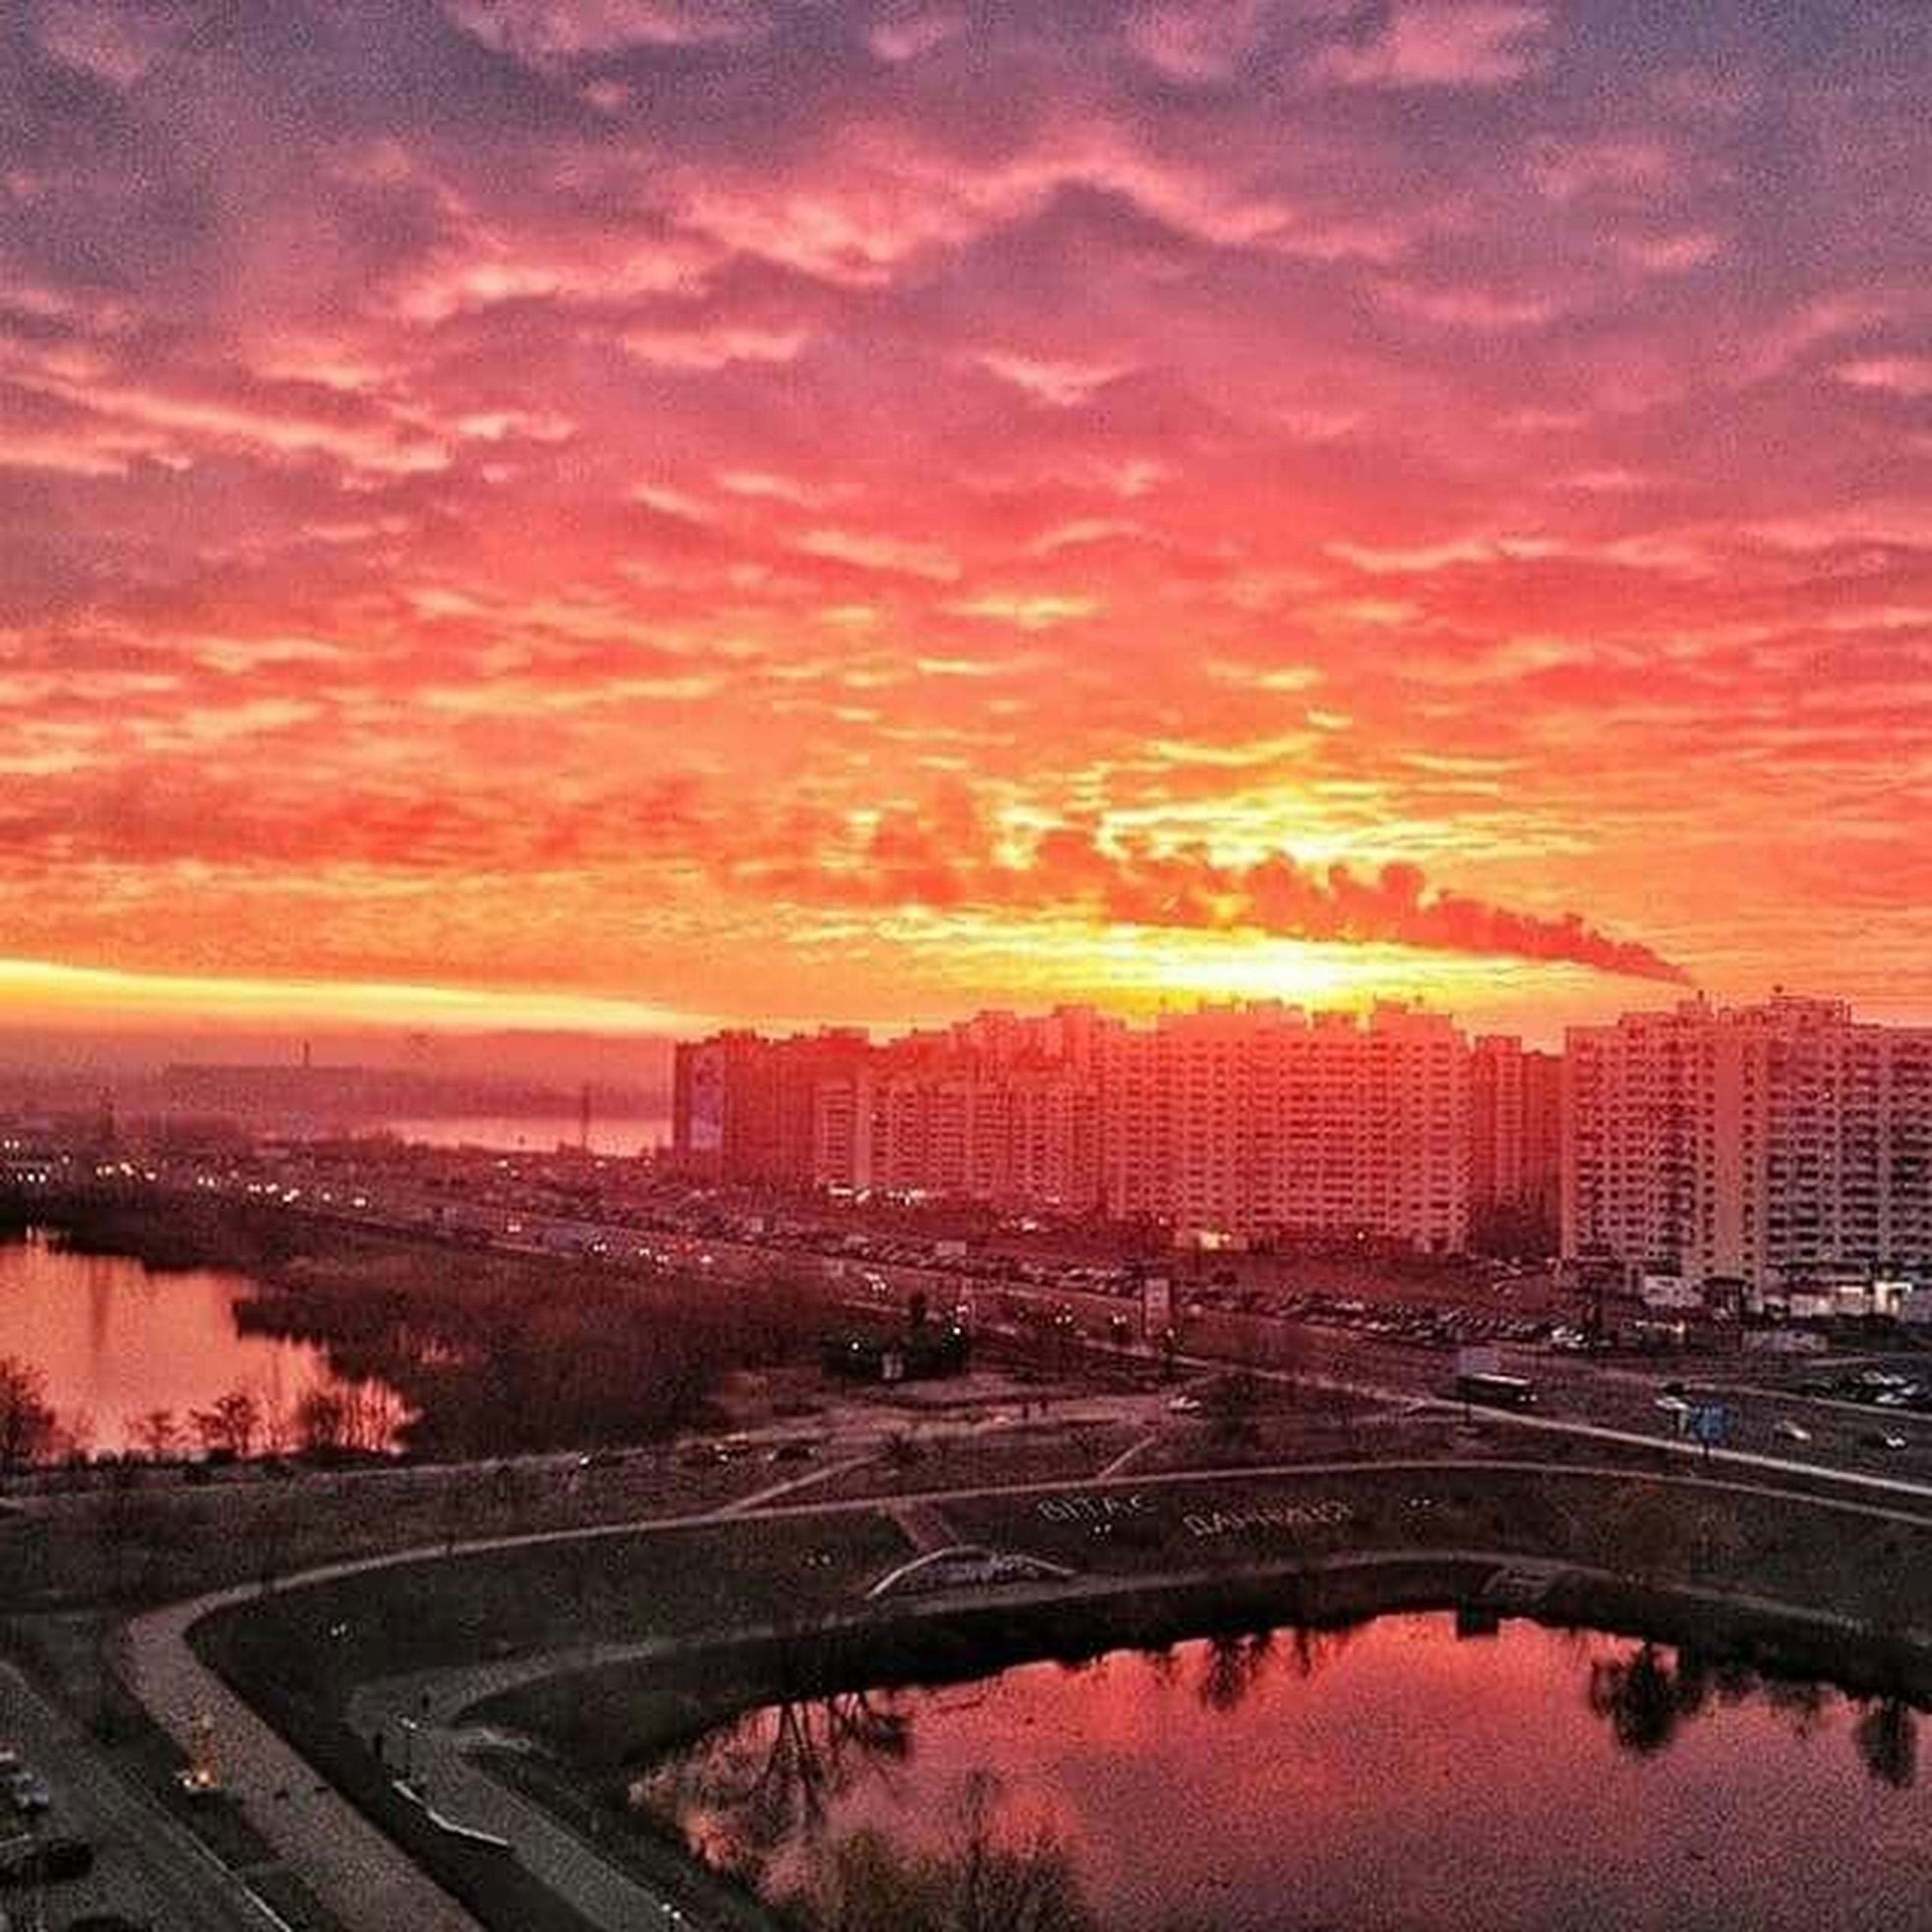 sunset, architecture, sky, built structure, cloud - sky, building exterior, city, orange color, cityscape, high angle view, dramatic sky, cloudy, cloud, illuminated, dusk, outdoors, water, connection, city life, river